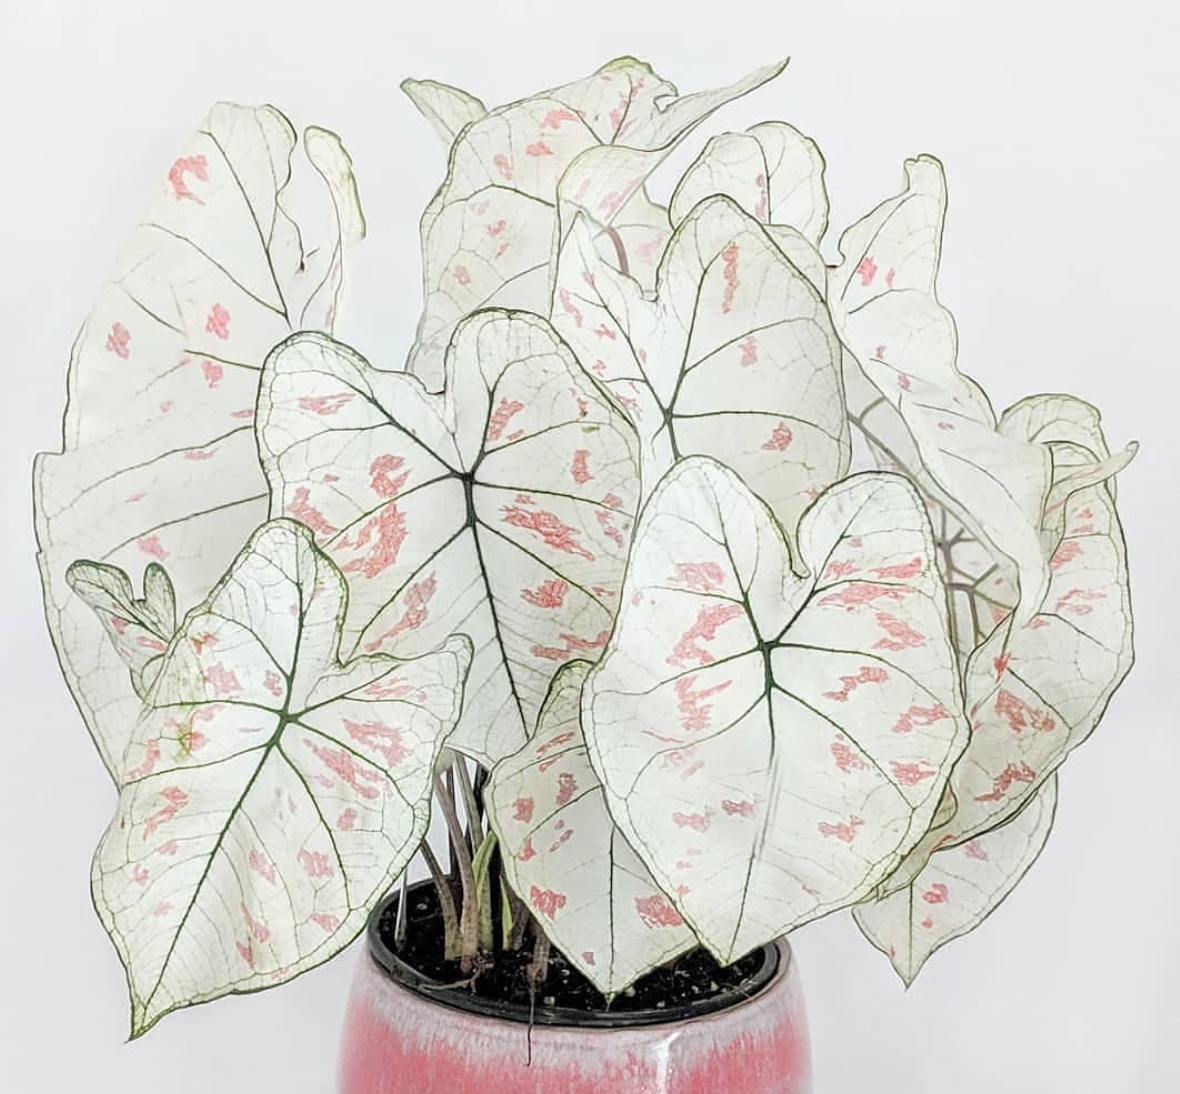 La folie des caladiums